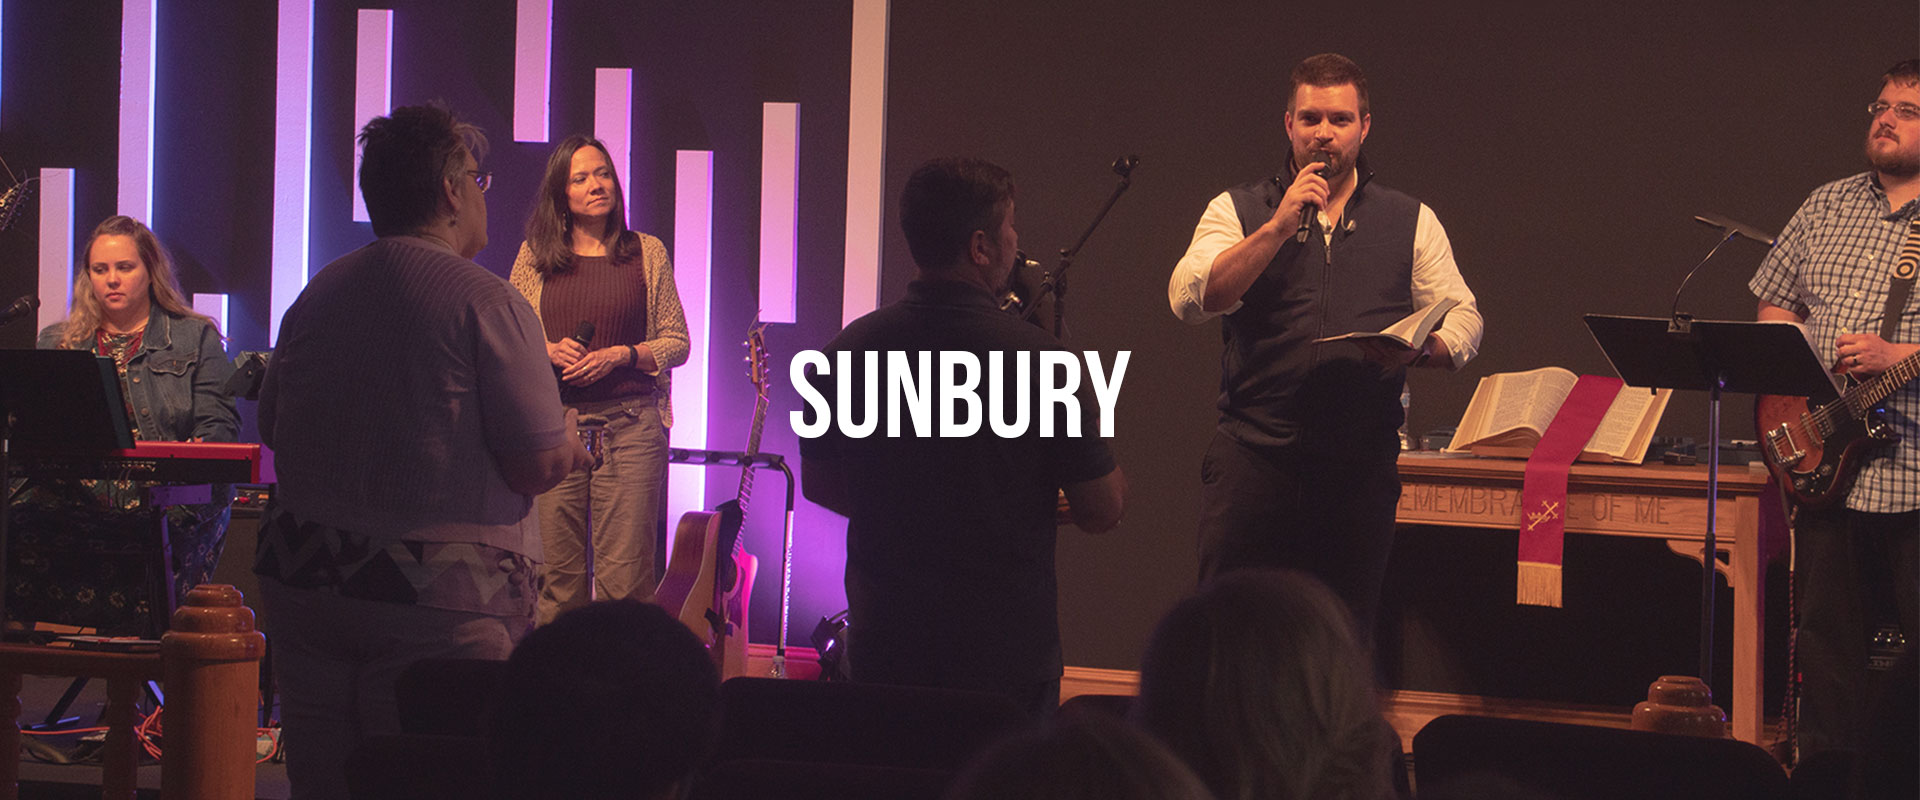 Sunbury-header-update